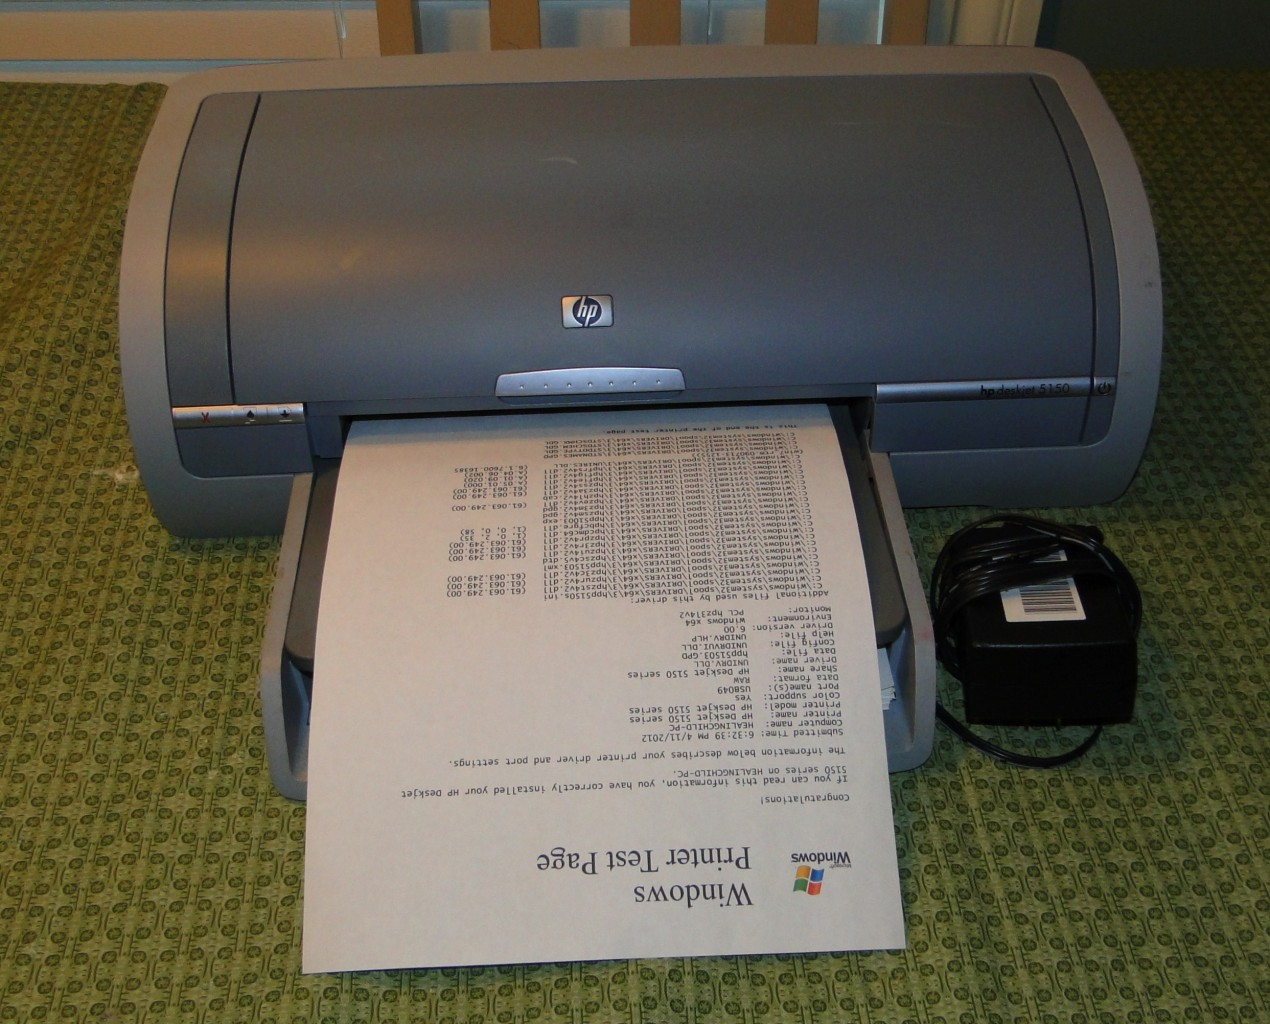 hewlett packard deskjet printer supply chain case Hp case study - deskjet printer supply chain essay deskjet printer was becoming one of hewlett-packard (hp) company's most successful products sales had grown steadily reaching around 600,000 units in 1990.